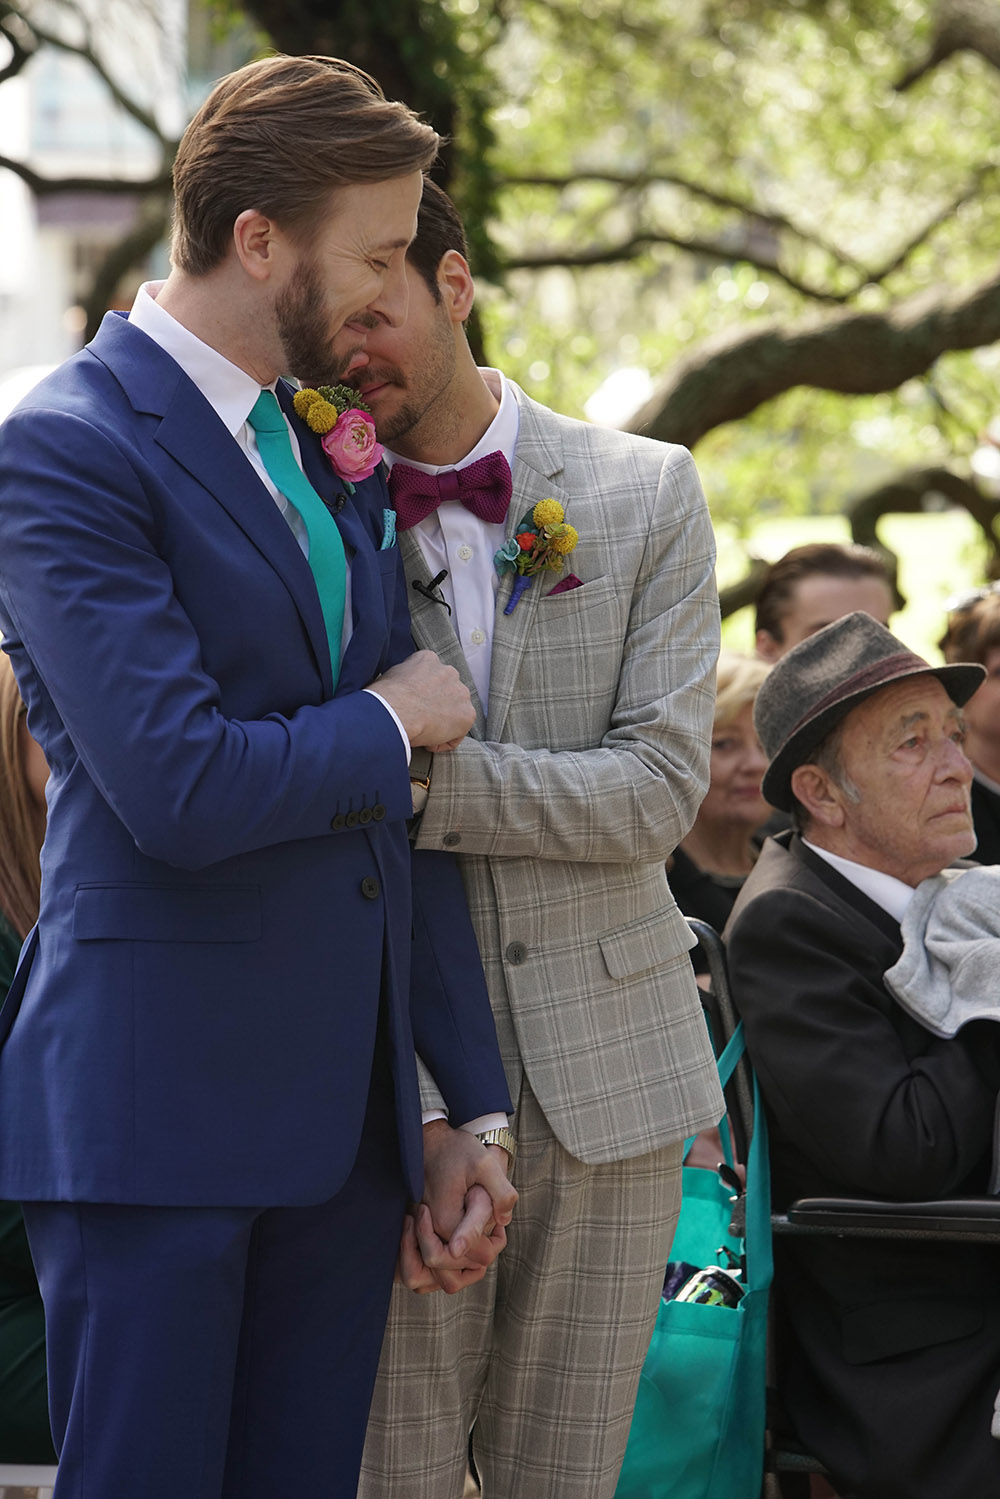 the grooms embrace during the wedding ceremony